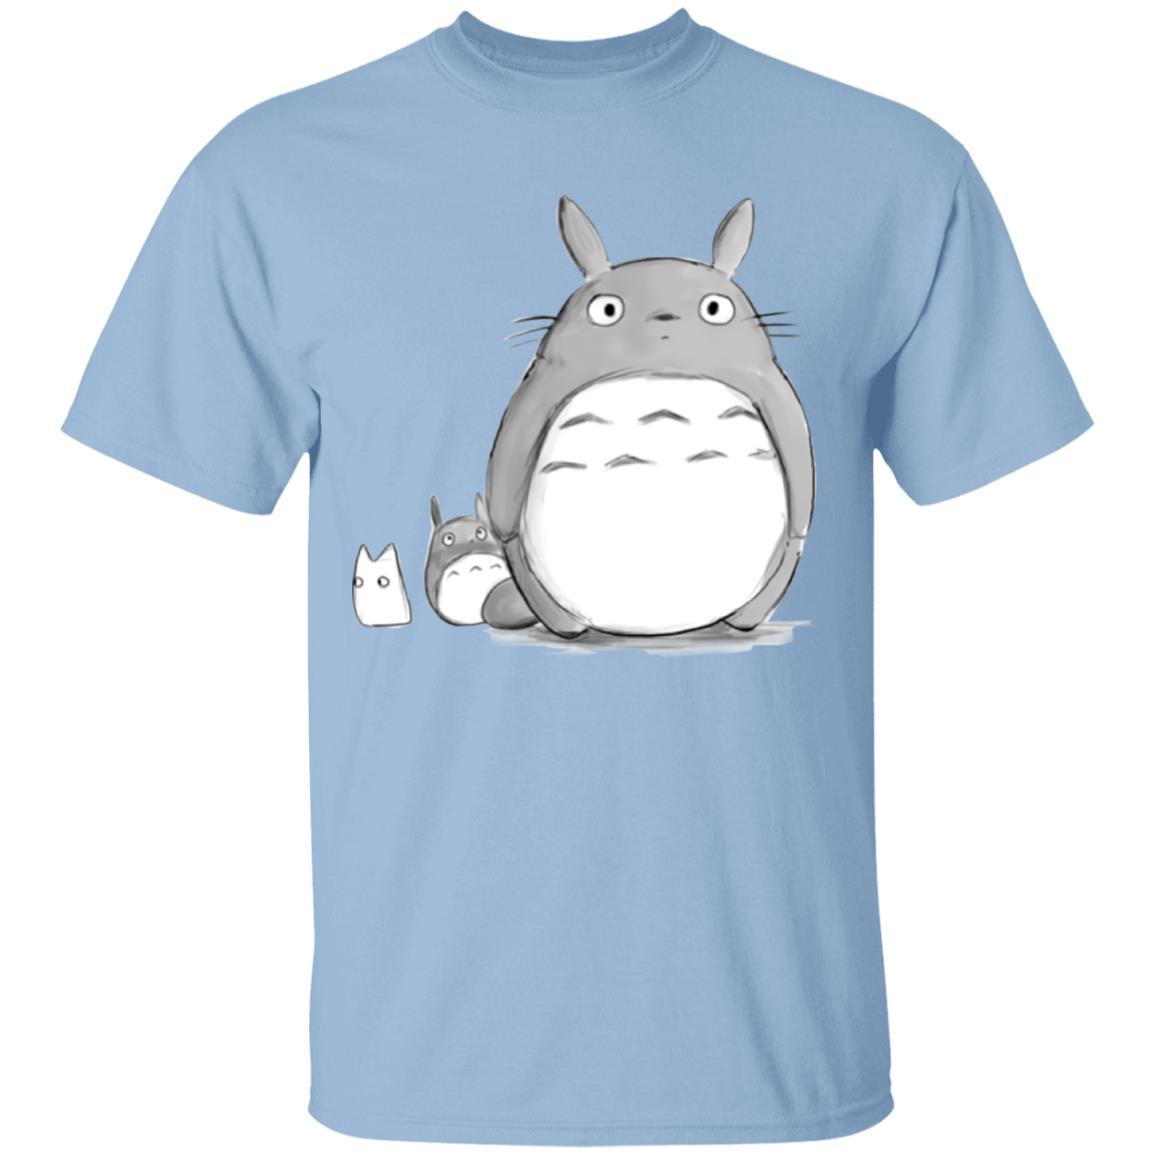 My Neighbor Totoro: The Giant and the Mini T Shirt